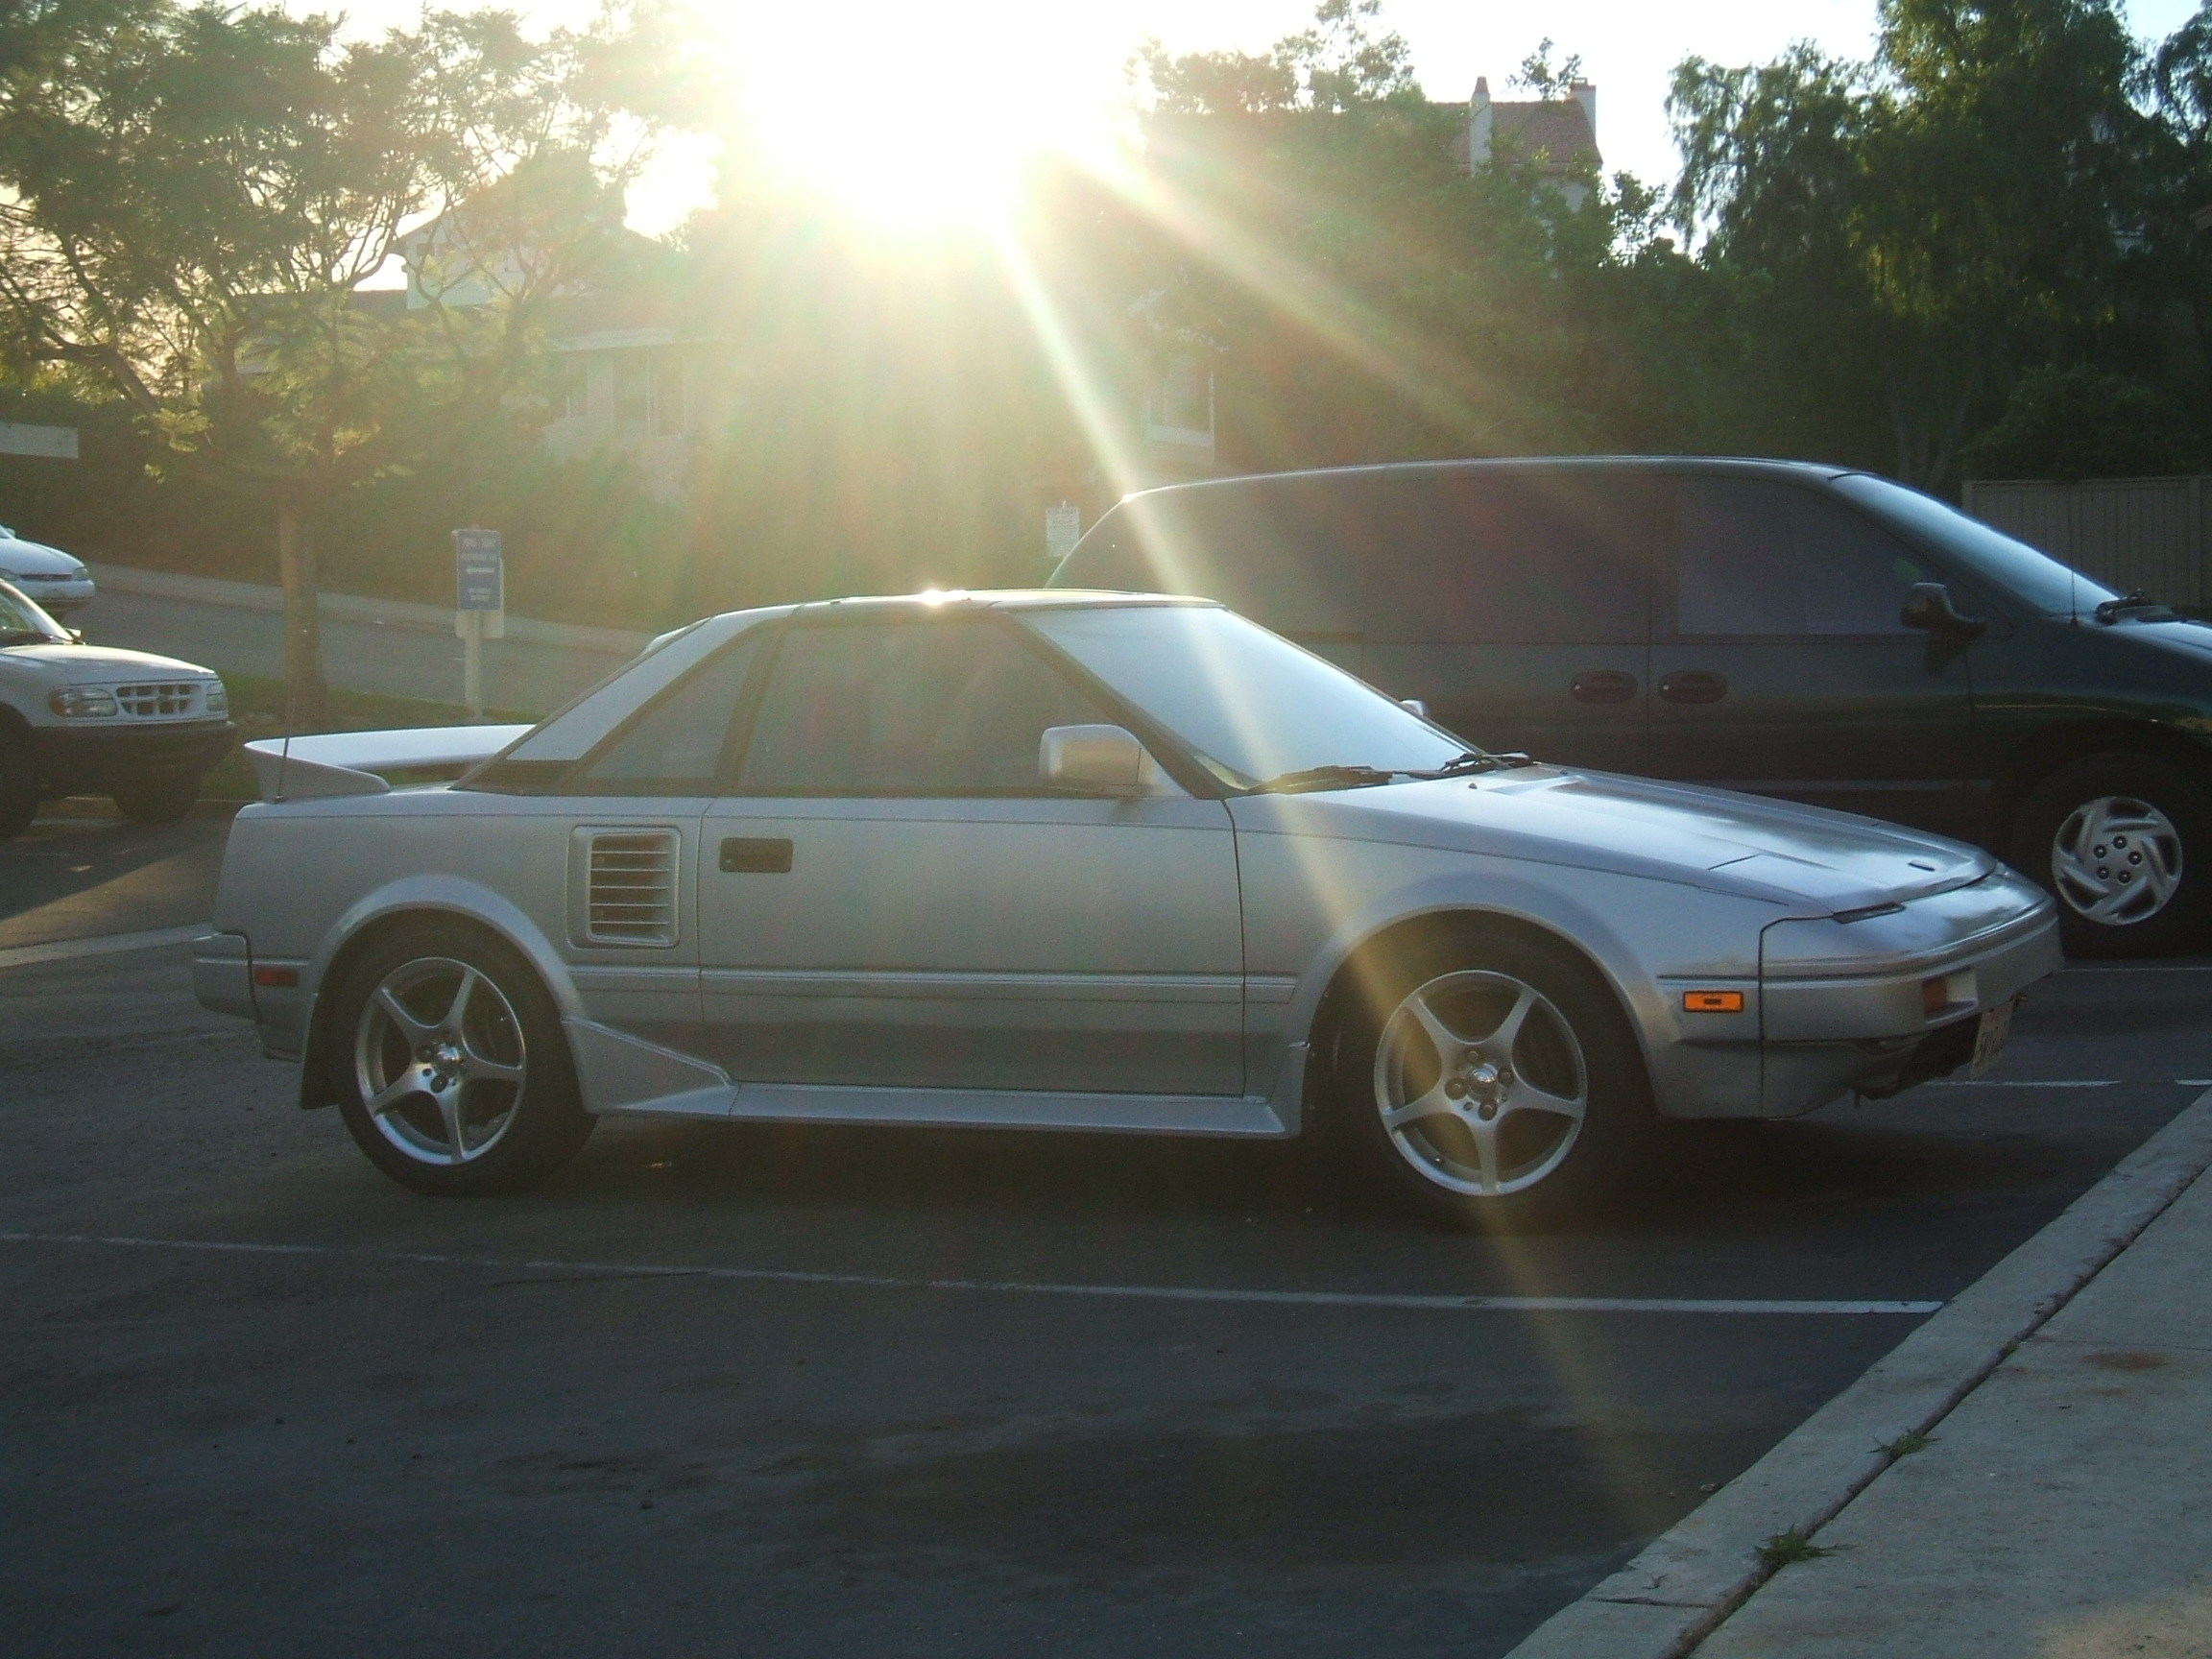 jaynh's 1988 Toyota MR2